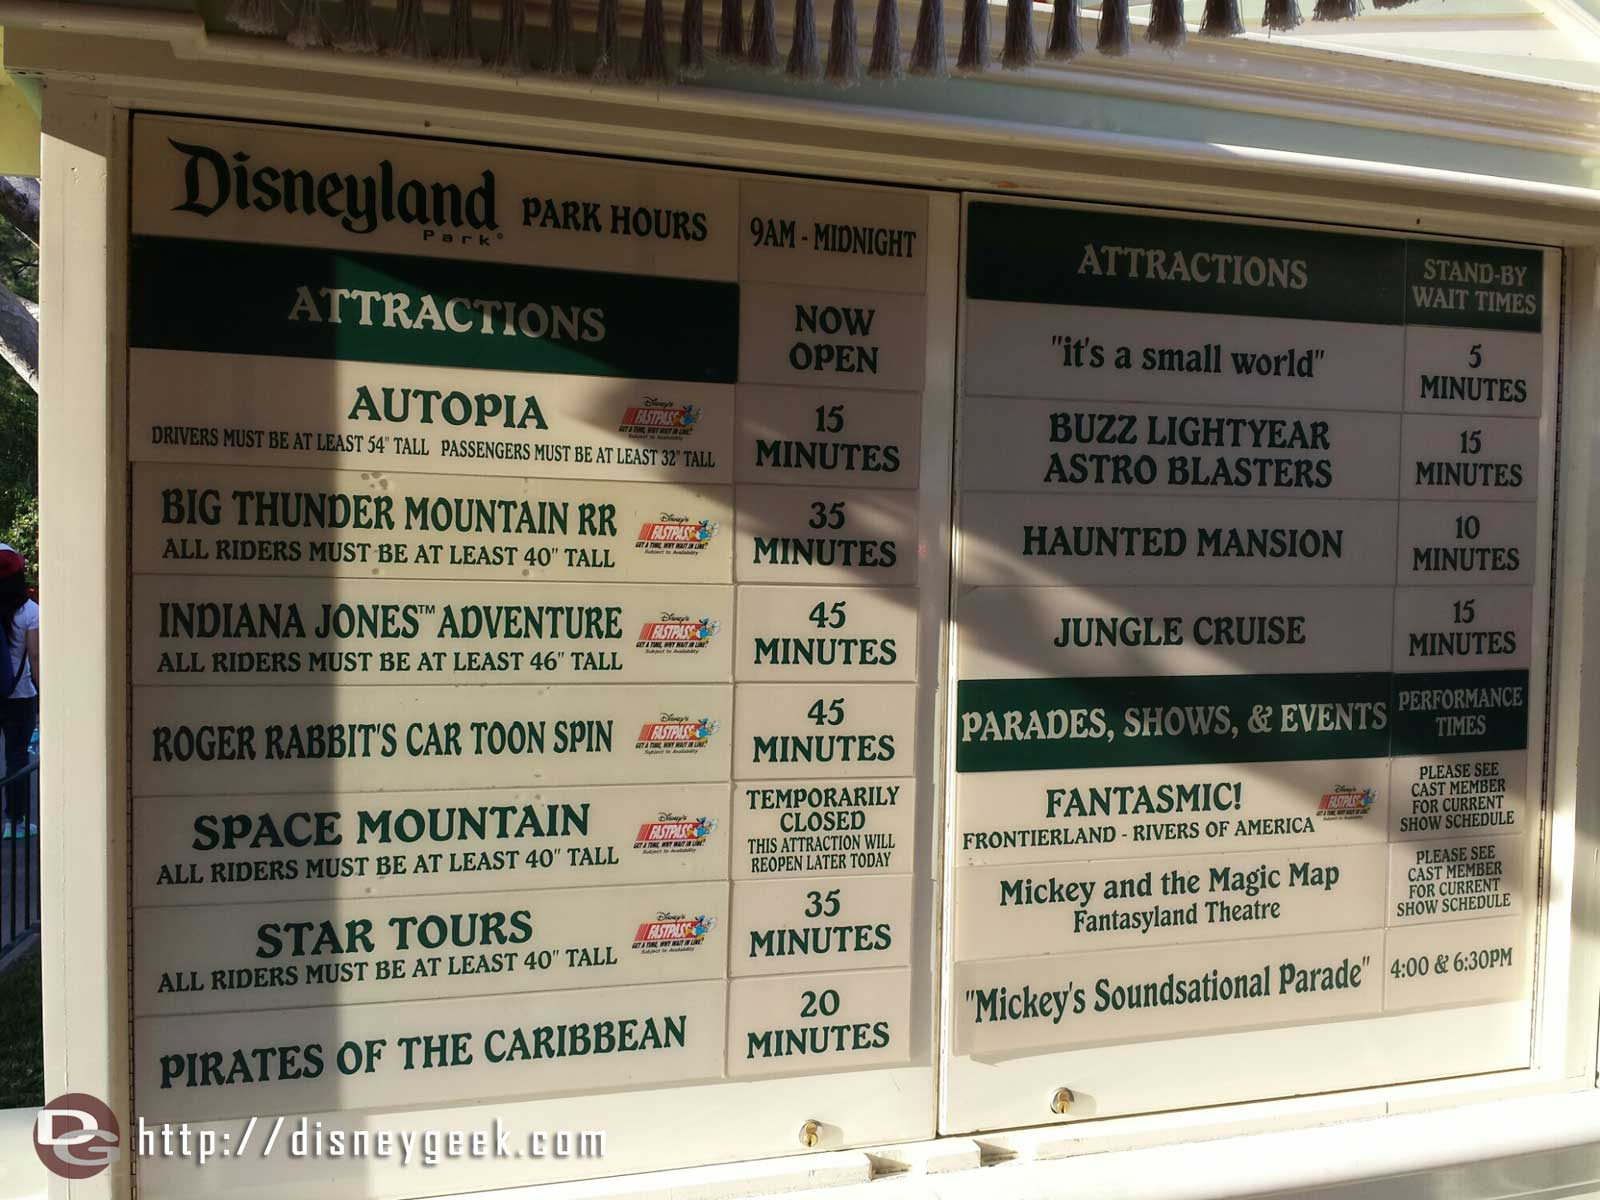 #Disneyland waits as of 3:40pm